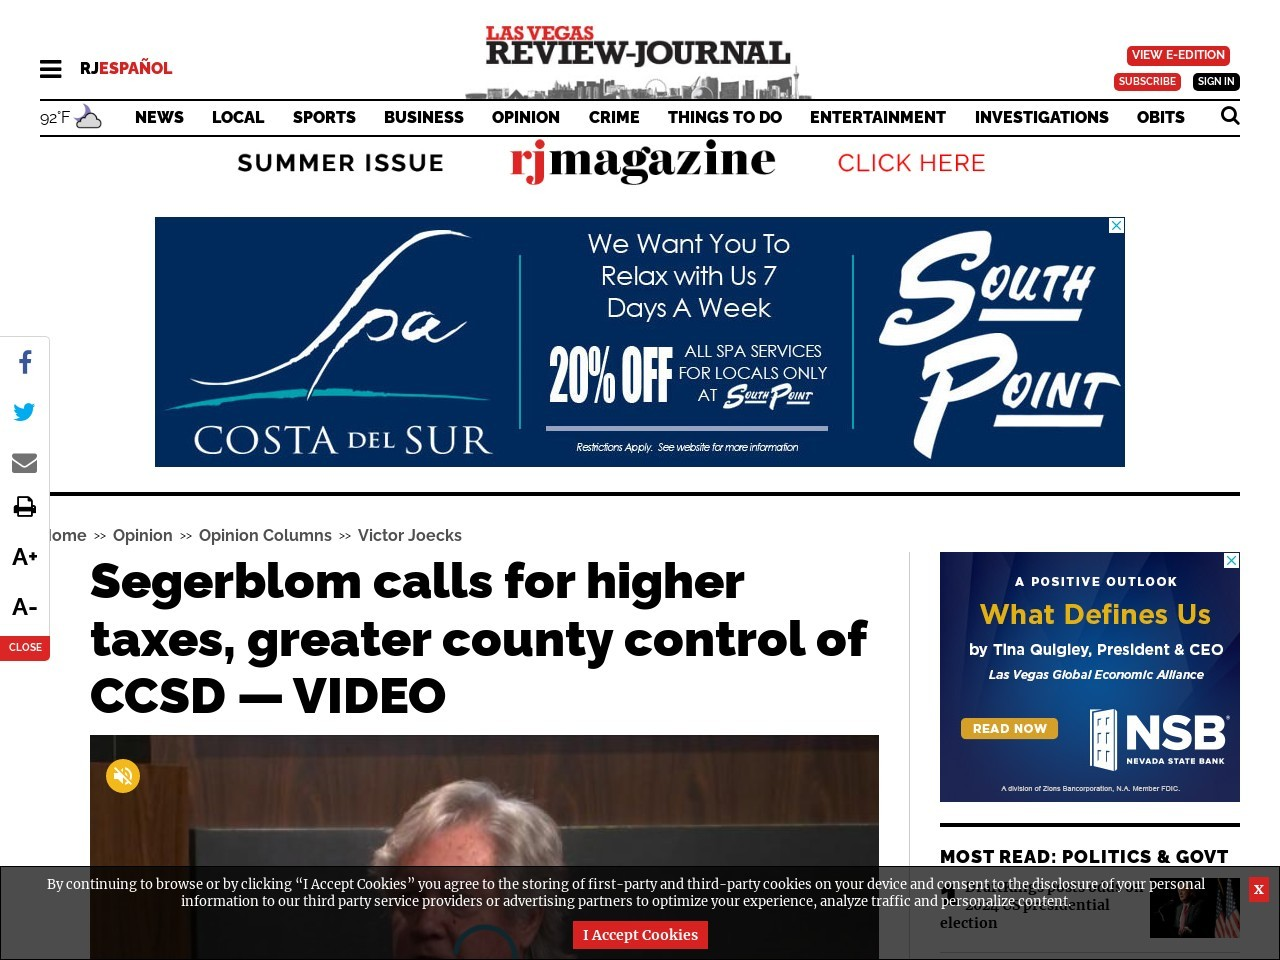 Segerblom calls for higher taxes, greater county control of CCSD — VIDEO